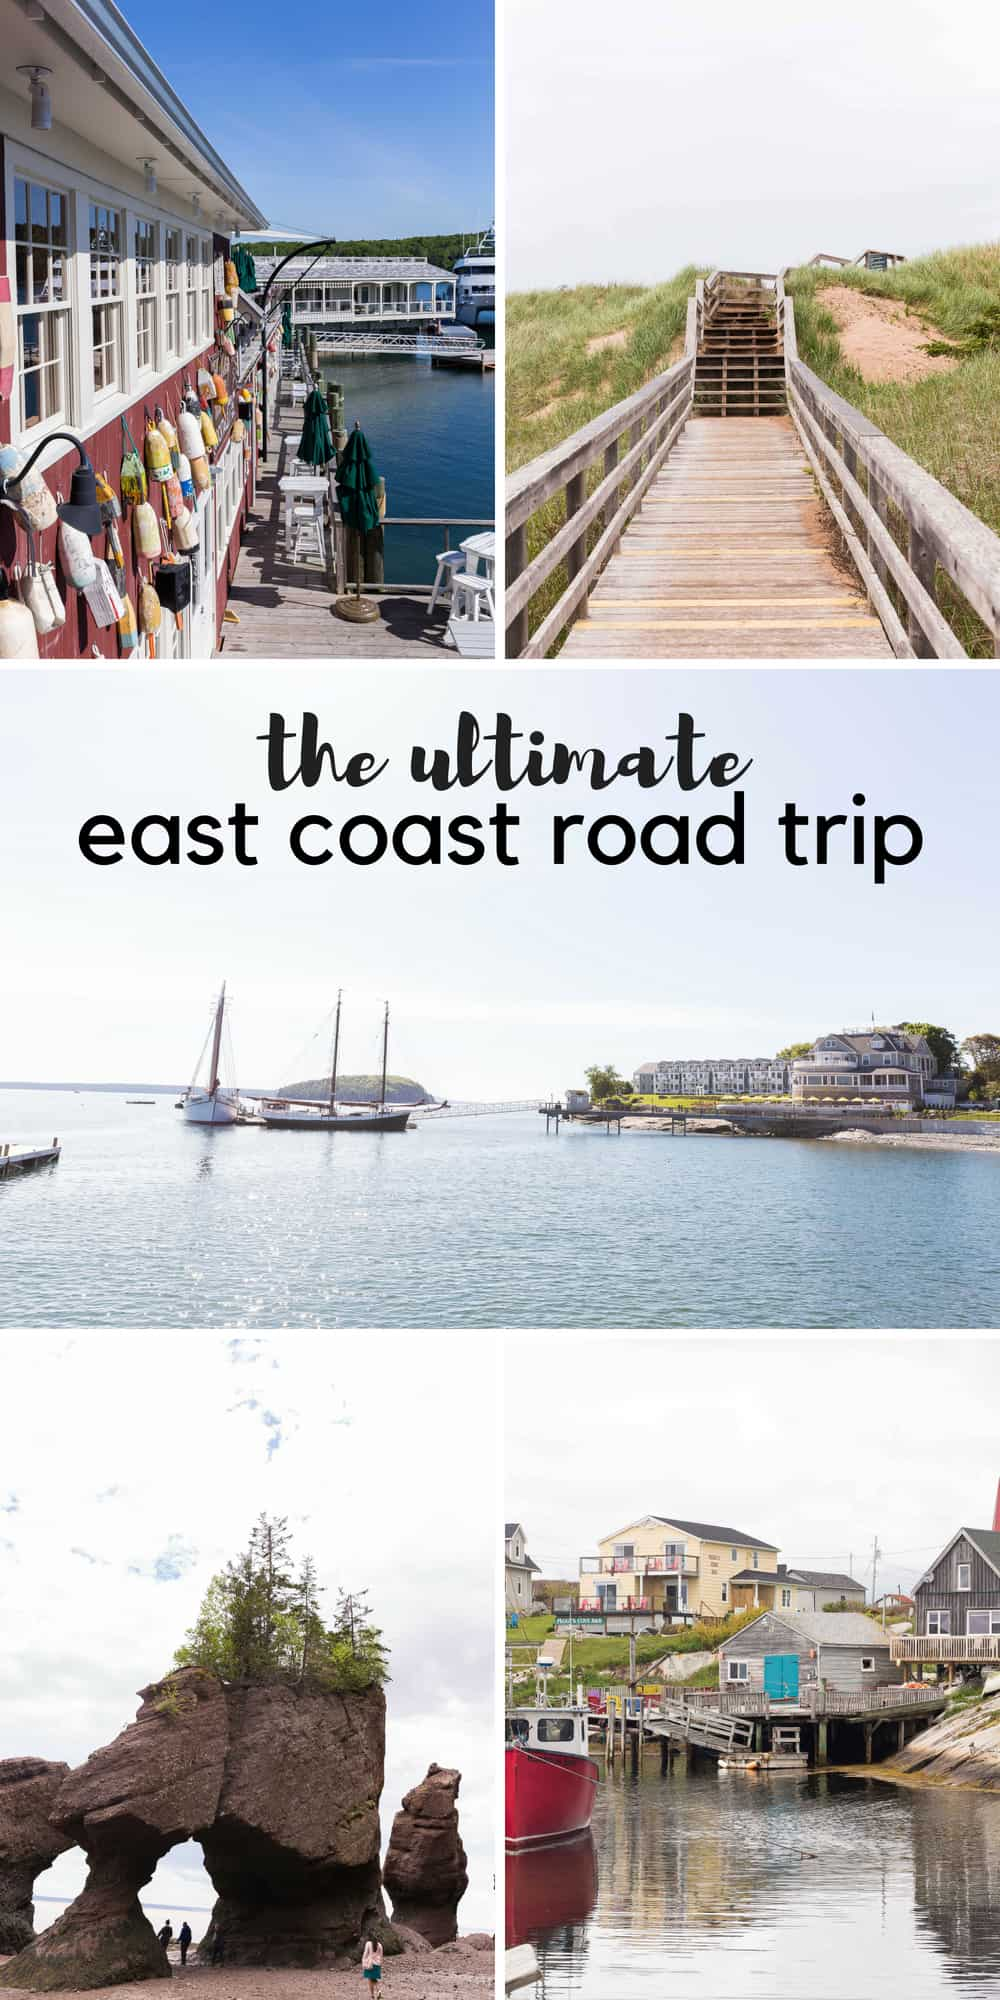 How to plan an East Coast Road Trip with kids! Where we went, what we did well, and what we would change. Plus our favorite road trip snacks and and the best road trip activities! Including: Halifax, Nova Scotia; PEI; Hopewell Rocks; Bar Harbor, Maine; Ogunquit, Maine; Brownsville, Vermont. #barharbor #maine #east #eastcoast #roadtrip #travel #travelling #travellingwithkids